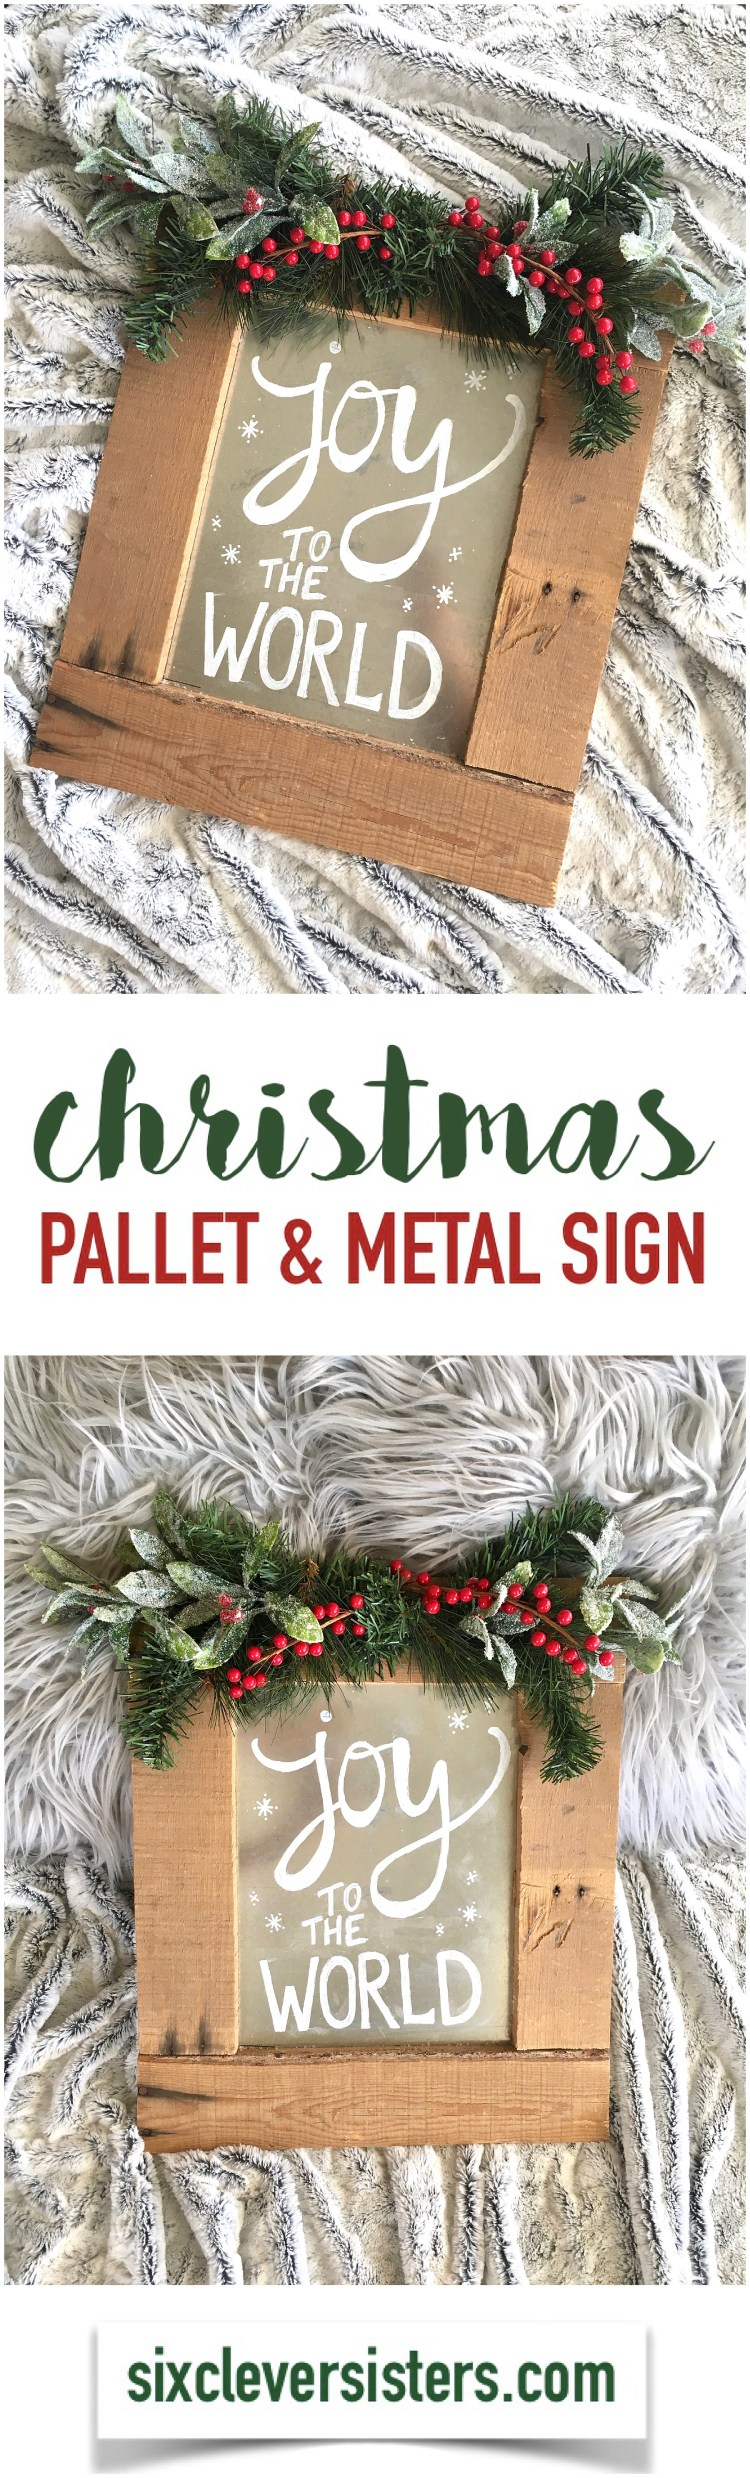 DIY Pallet Christmas Sign - Joy to the World Pallet Wood & Metal ...